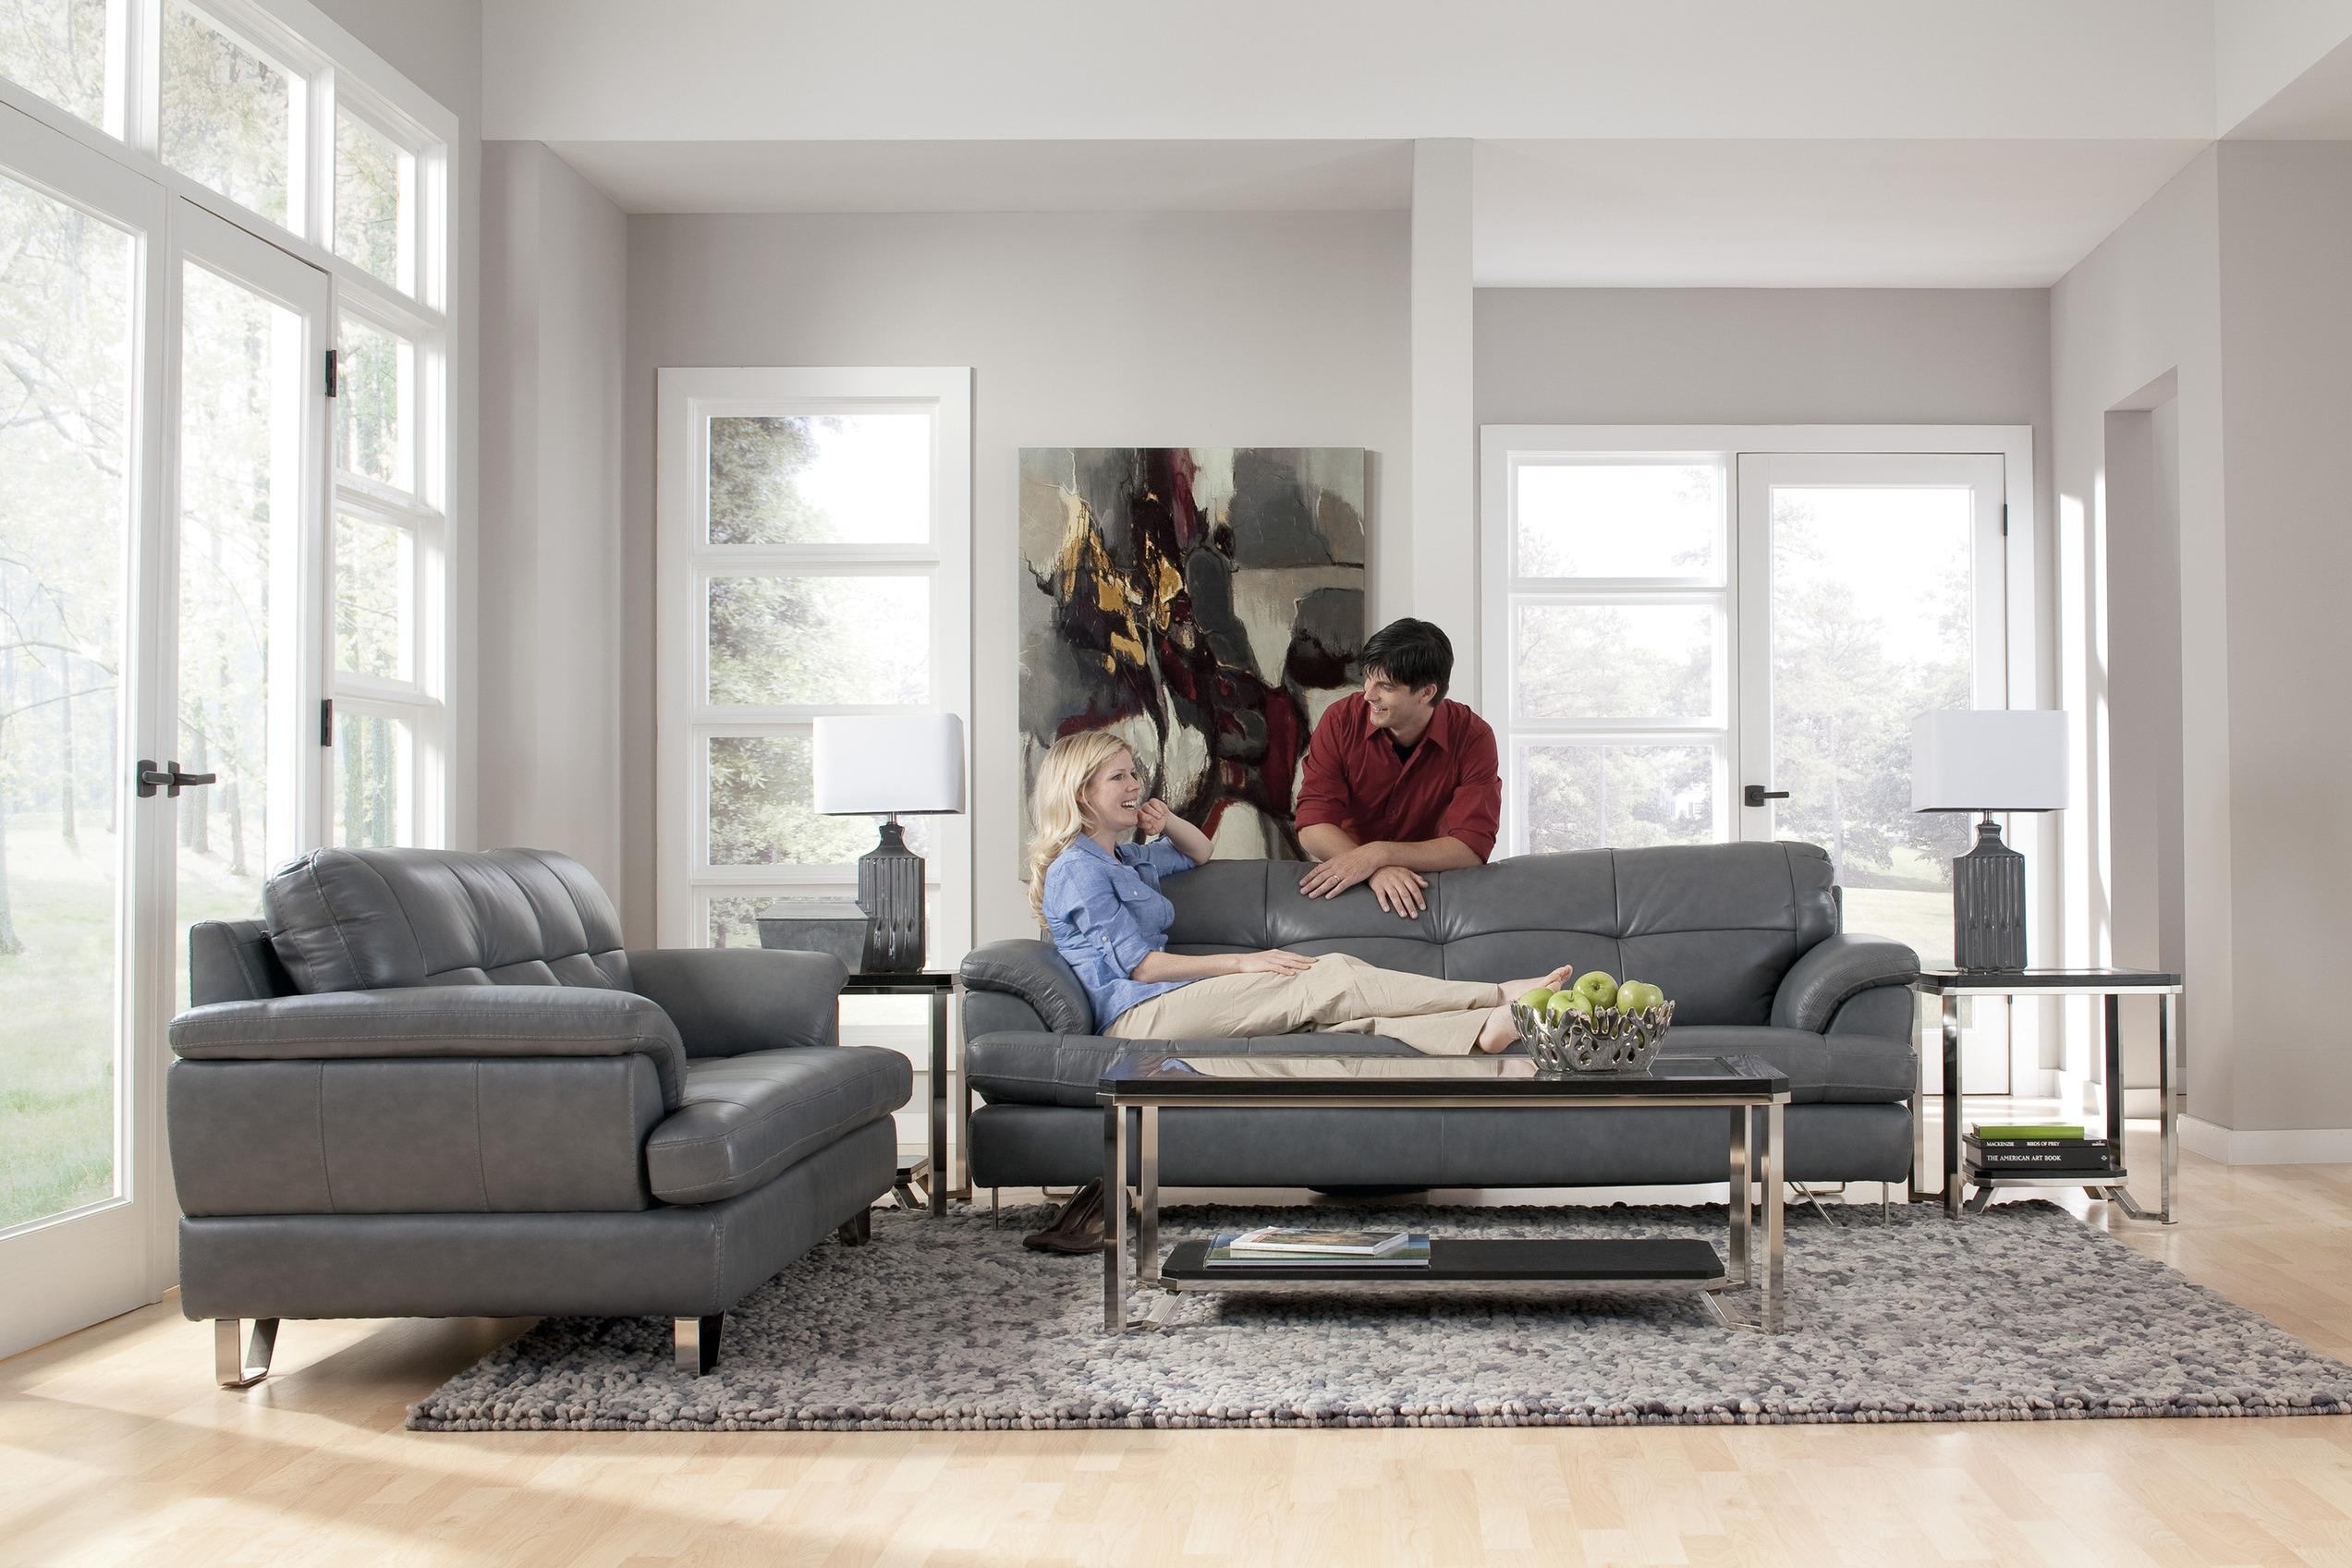 Pictures Of Living Rooms With Gray Sofas – Creditrestore Within Gray Sofas For Living Room (View 2 of 20)